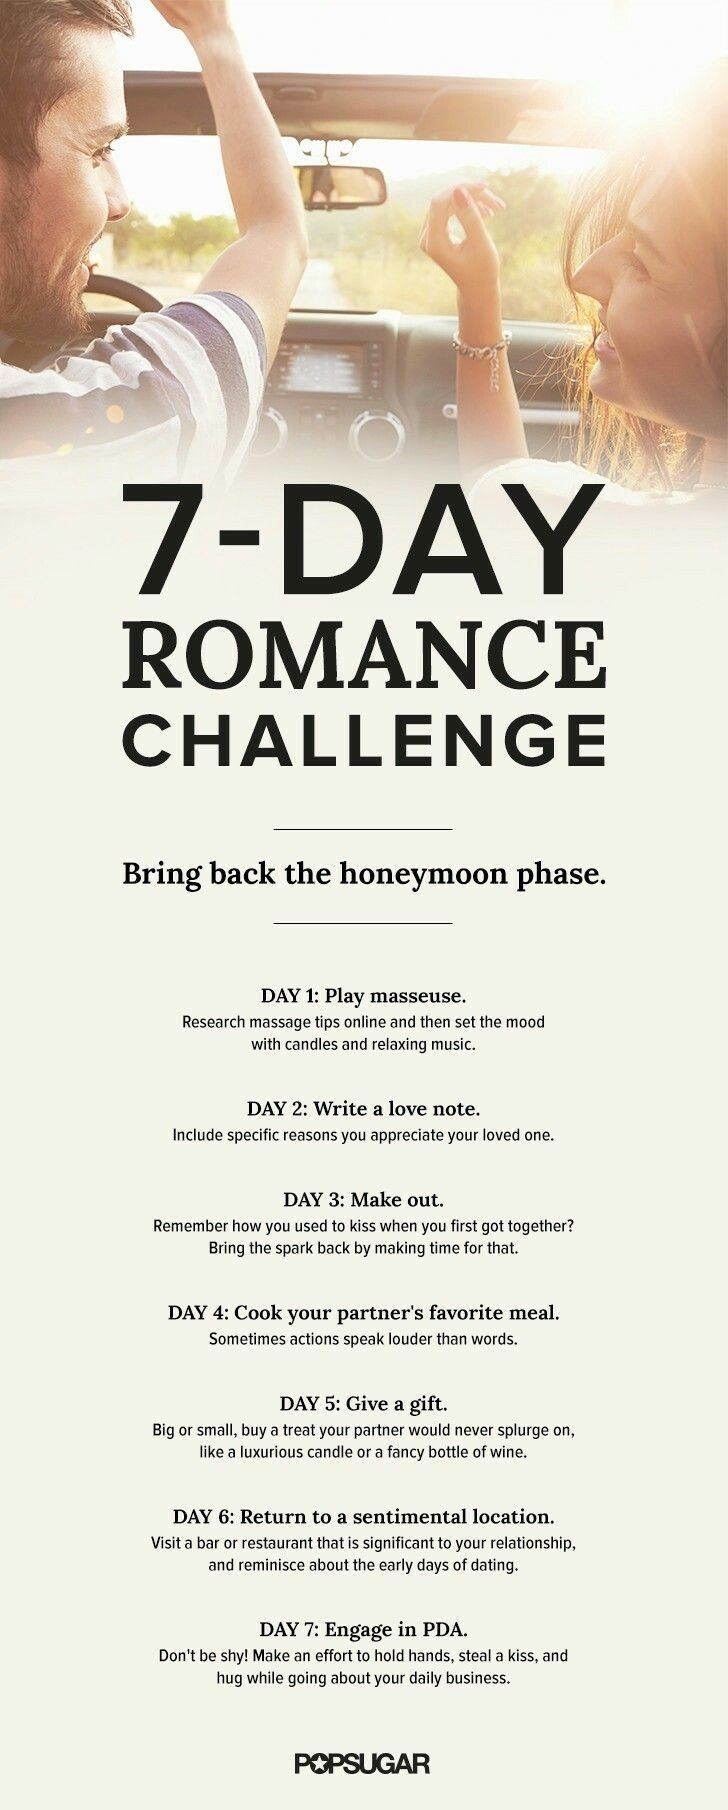 10 perfect fun date ideas for married couples